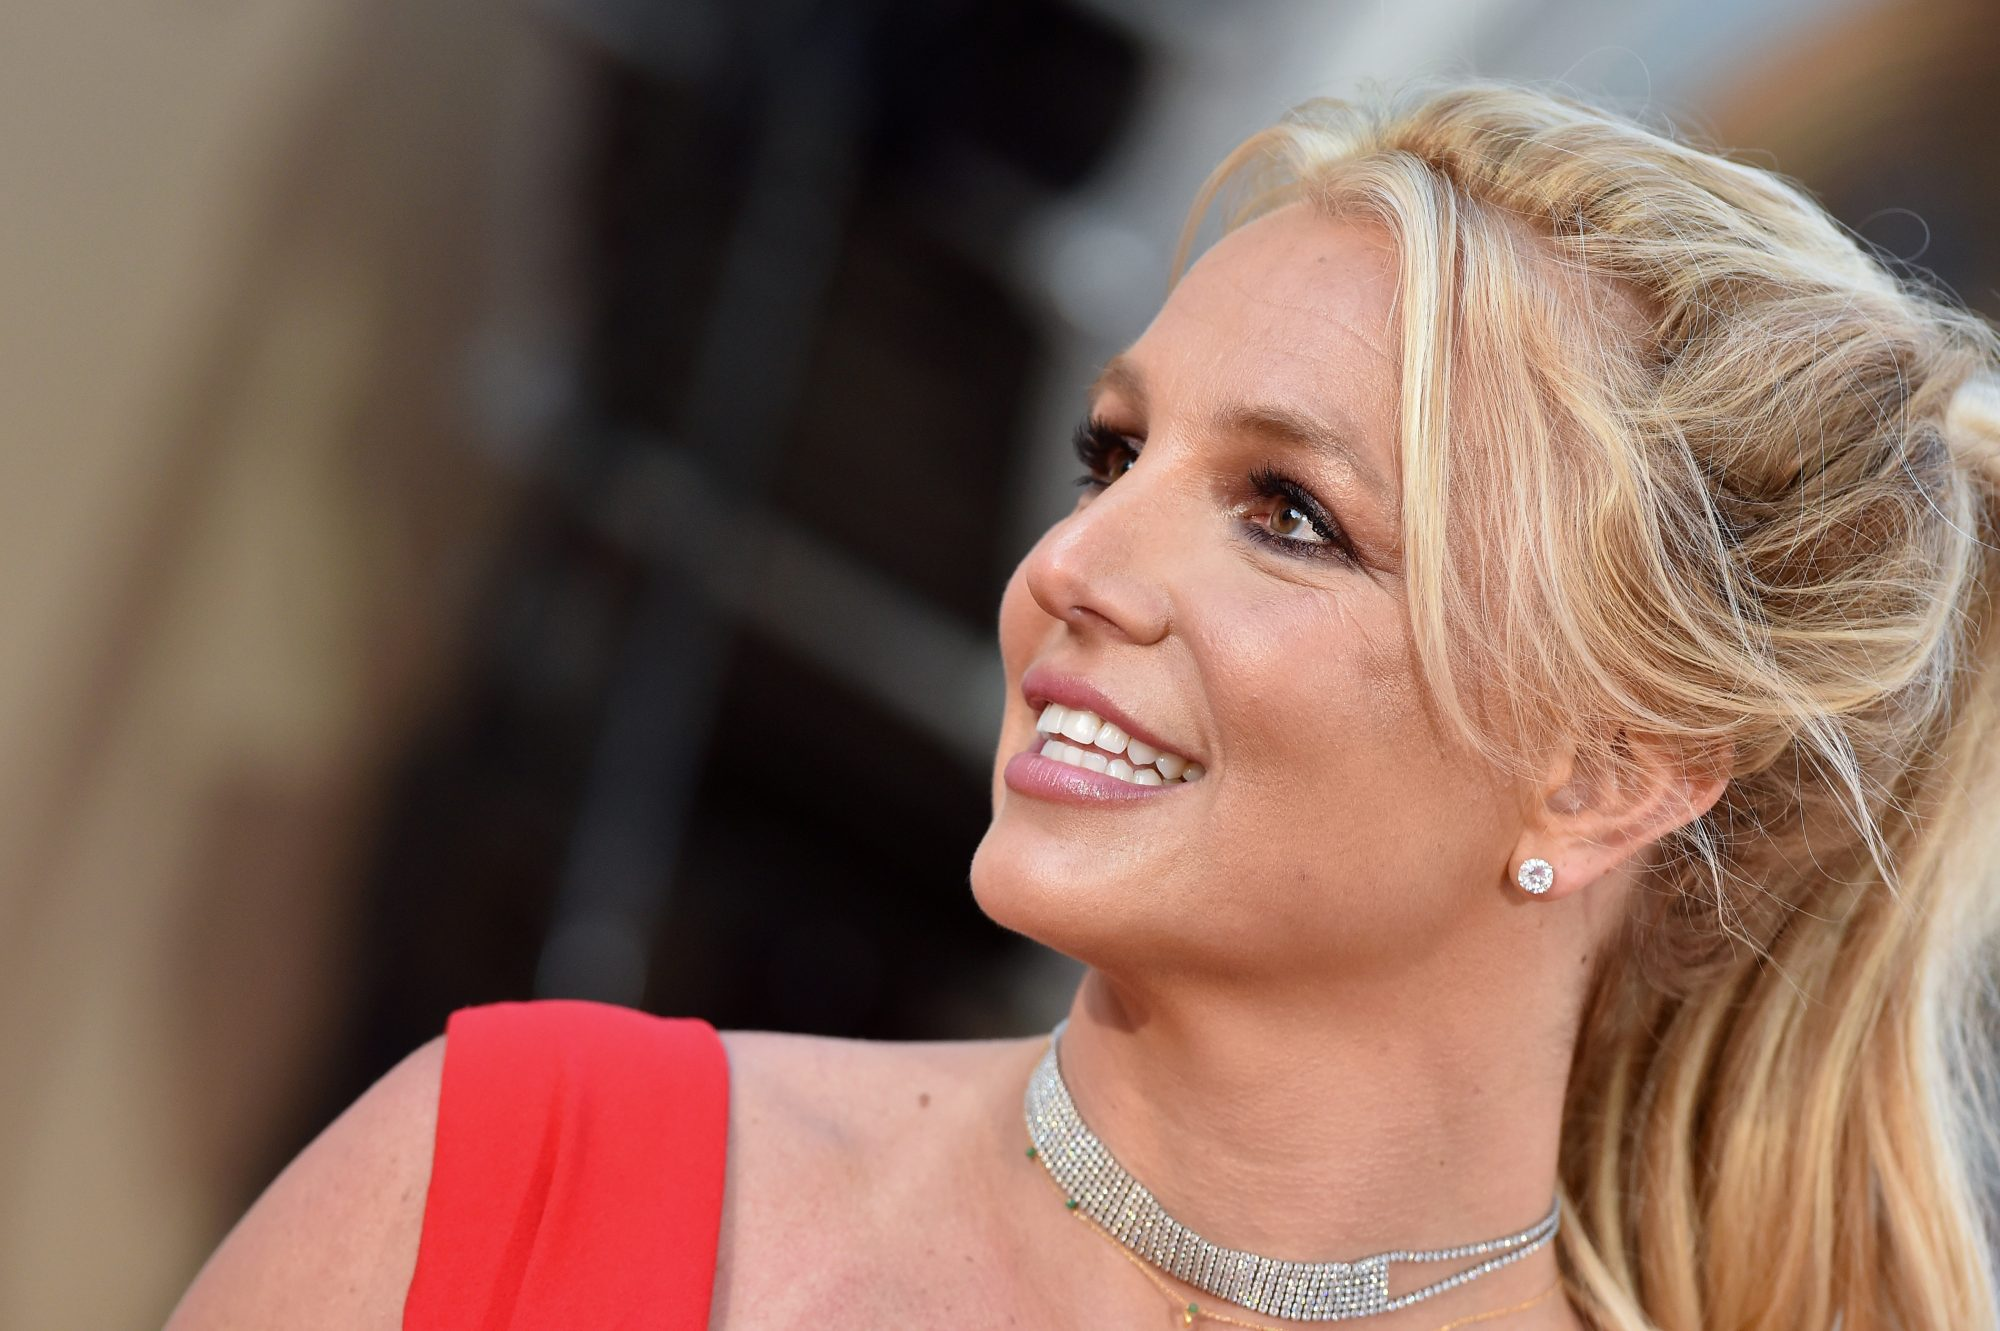 People Are Coming for Britney Spears Over Her Instagram of a Shoe